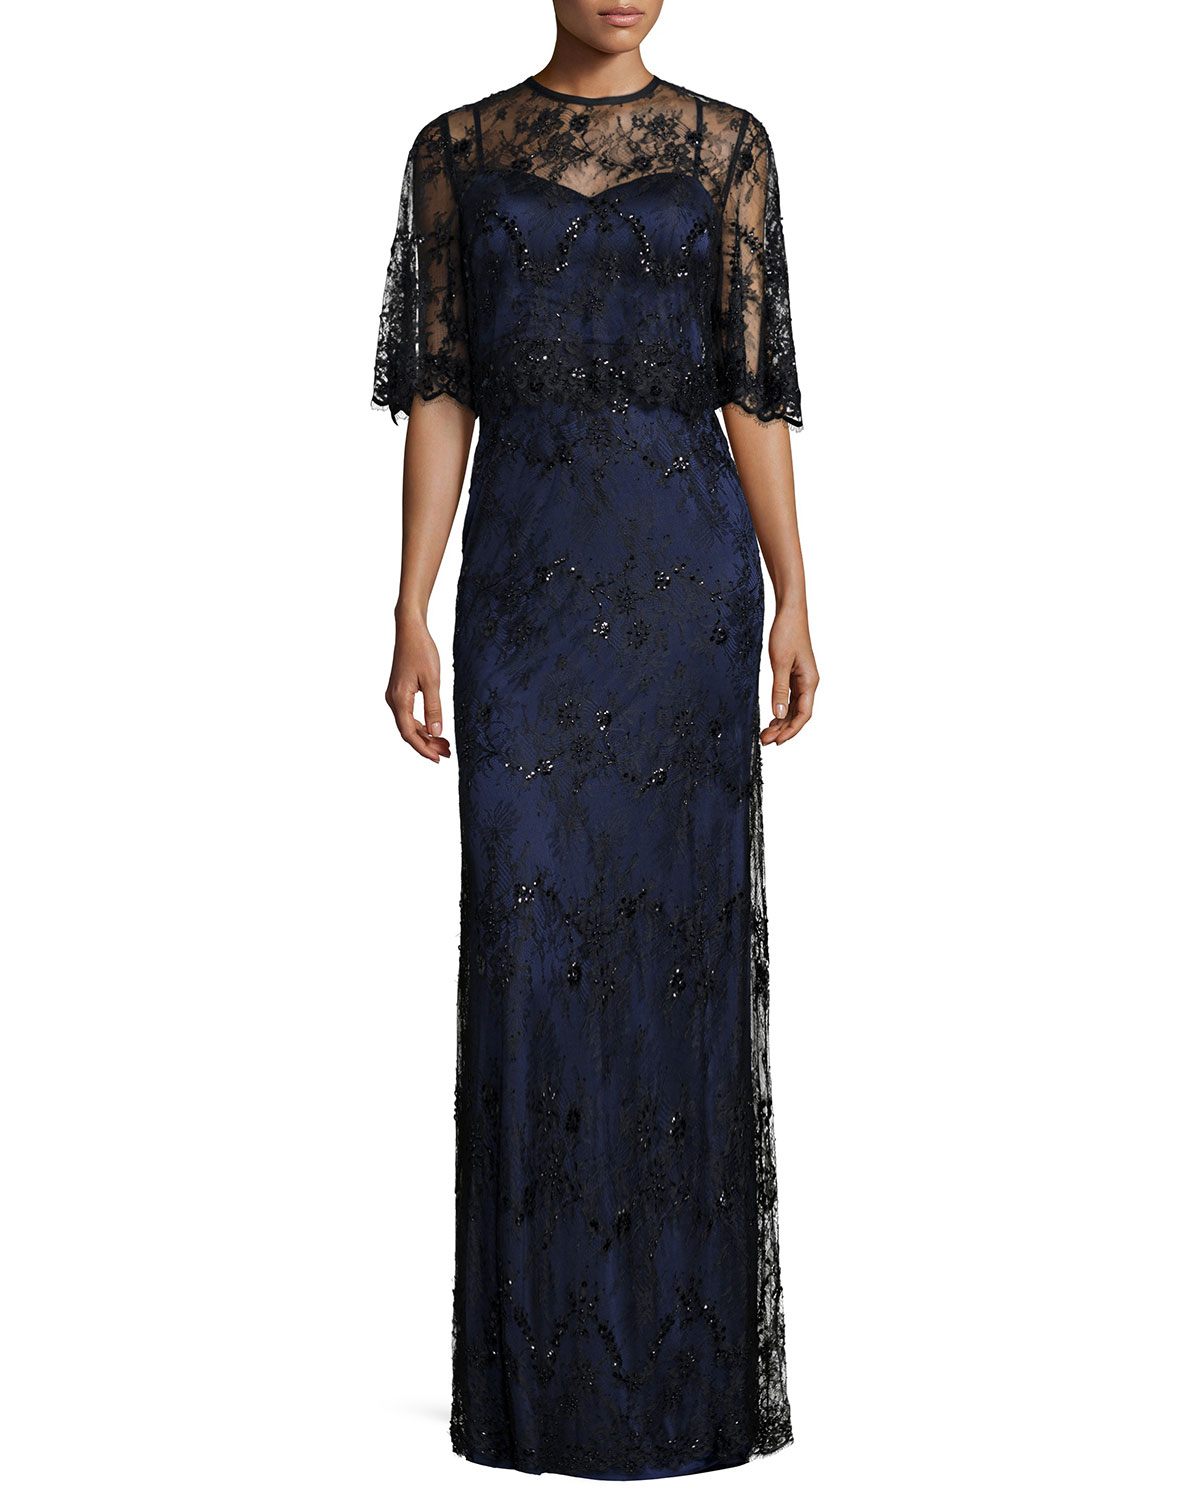 Beaded Two-Tone Lace Capelet Gown, Black/Navy